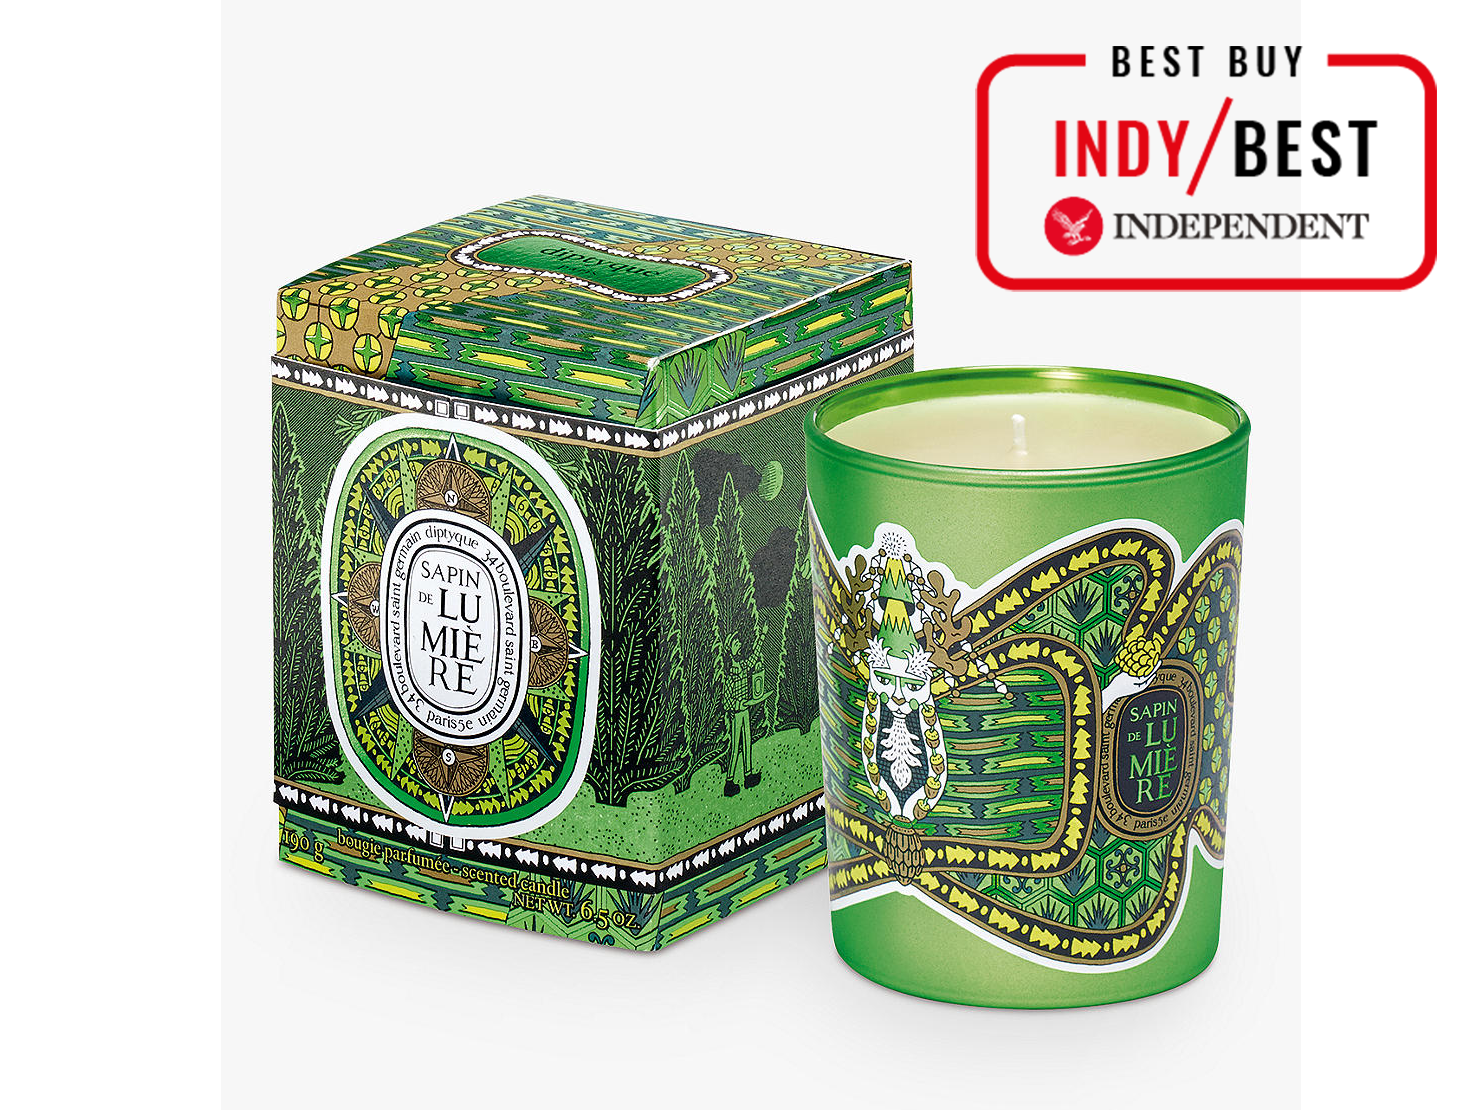 10 best winter candles | The Independent